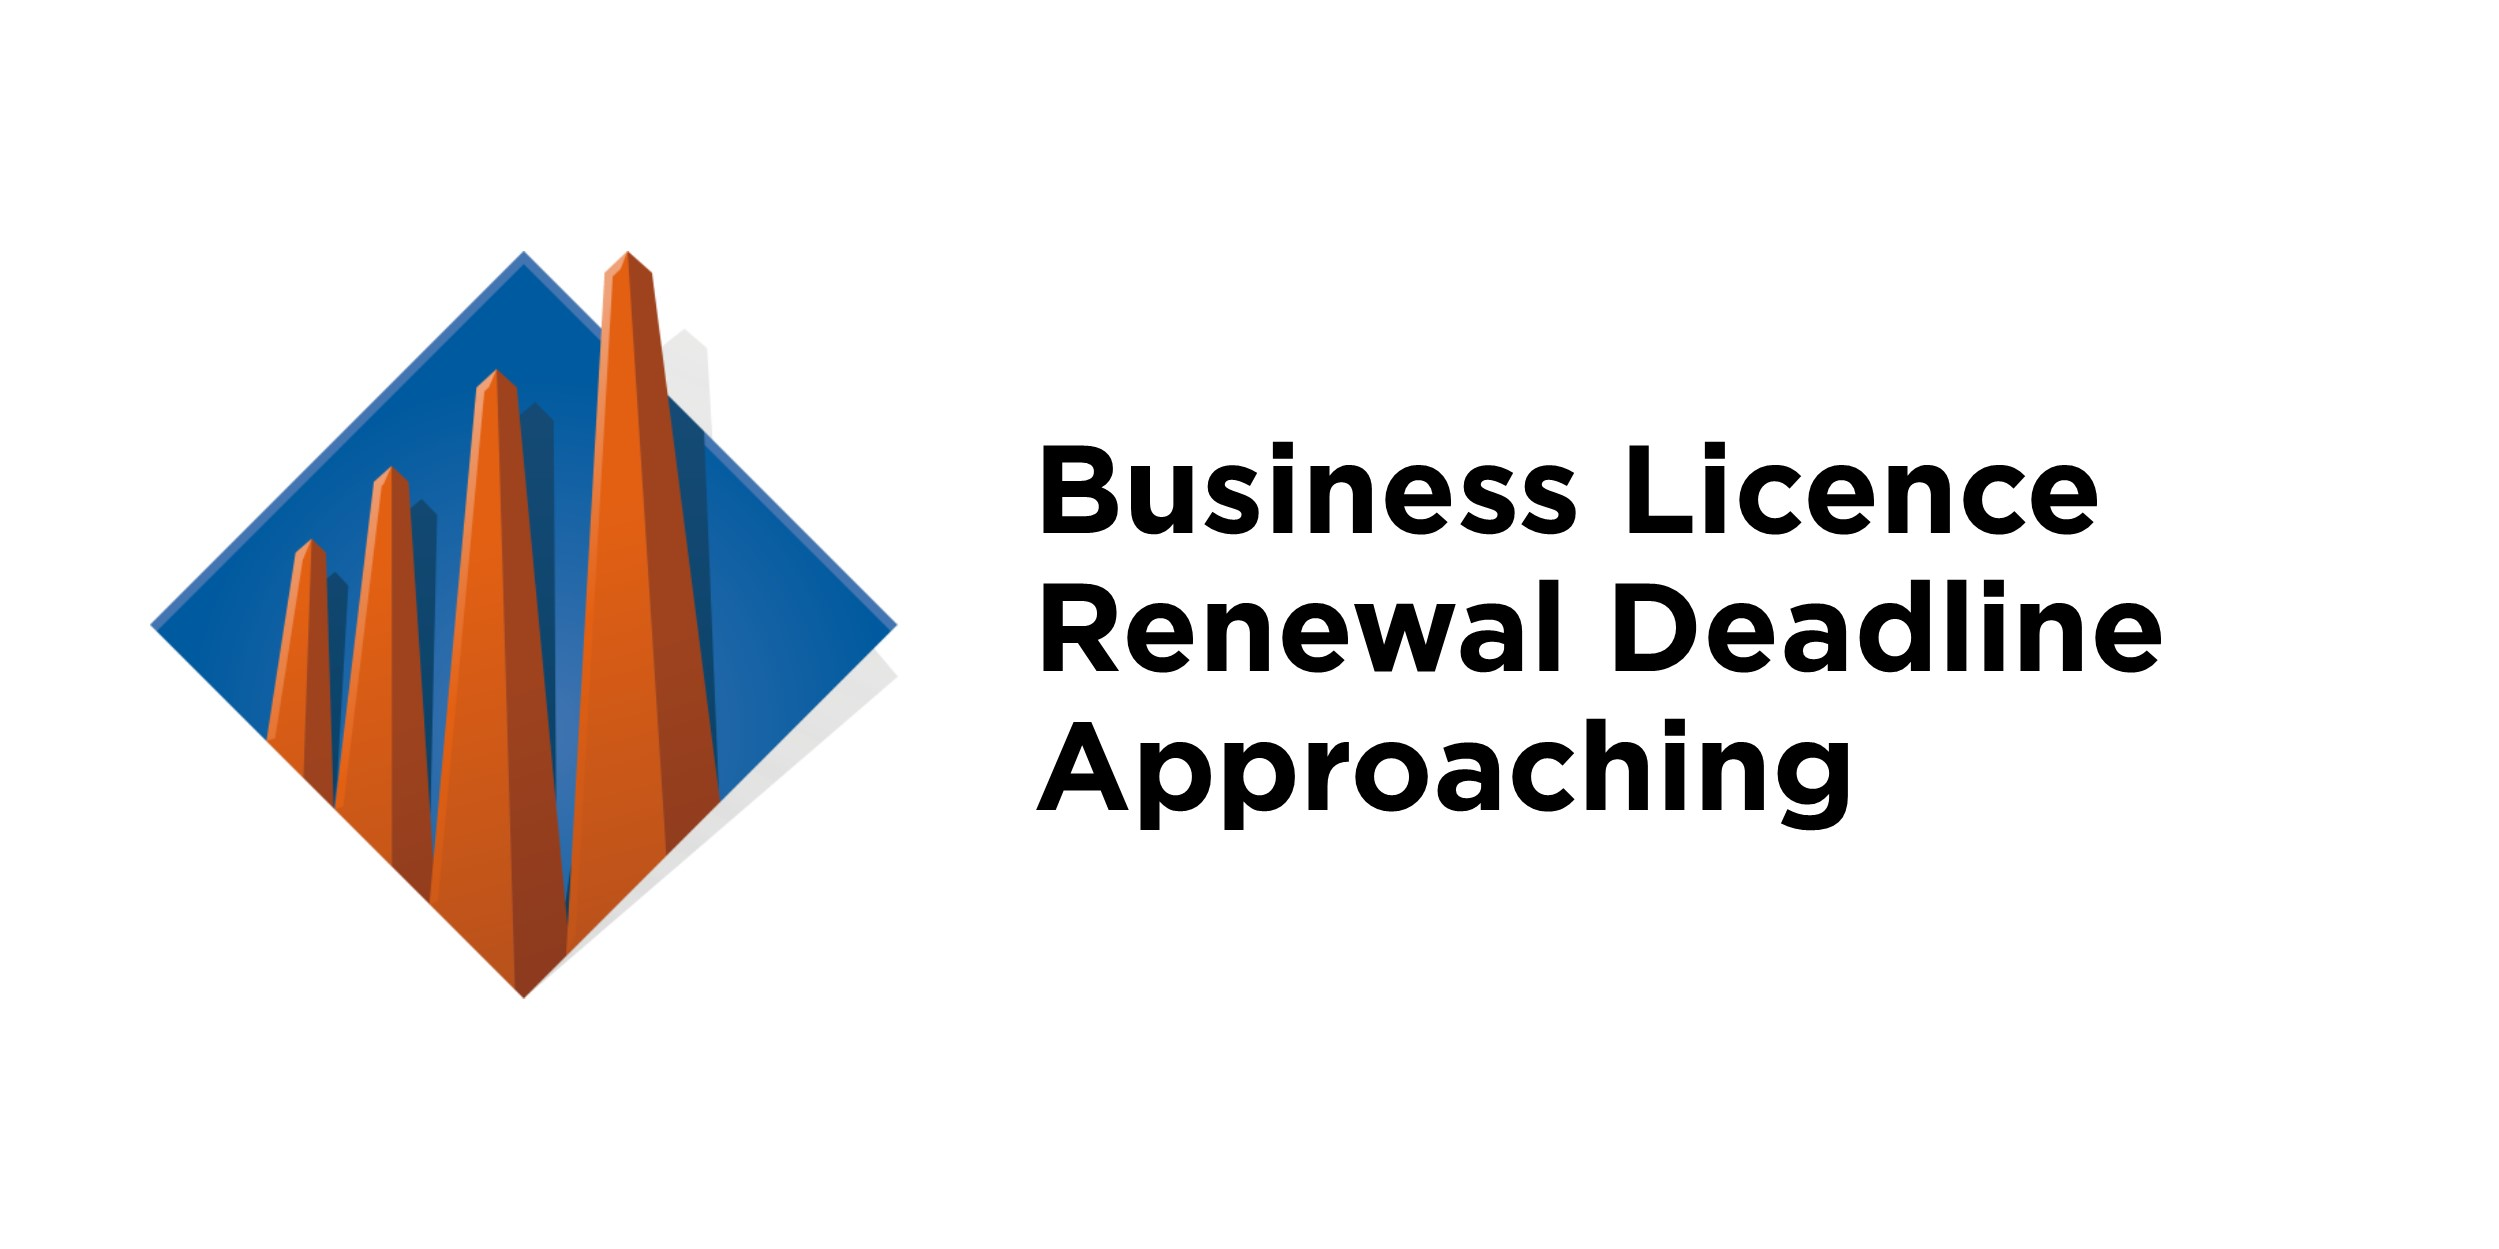 Business Licence Renewal